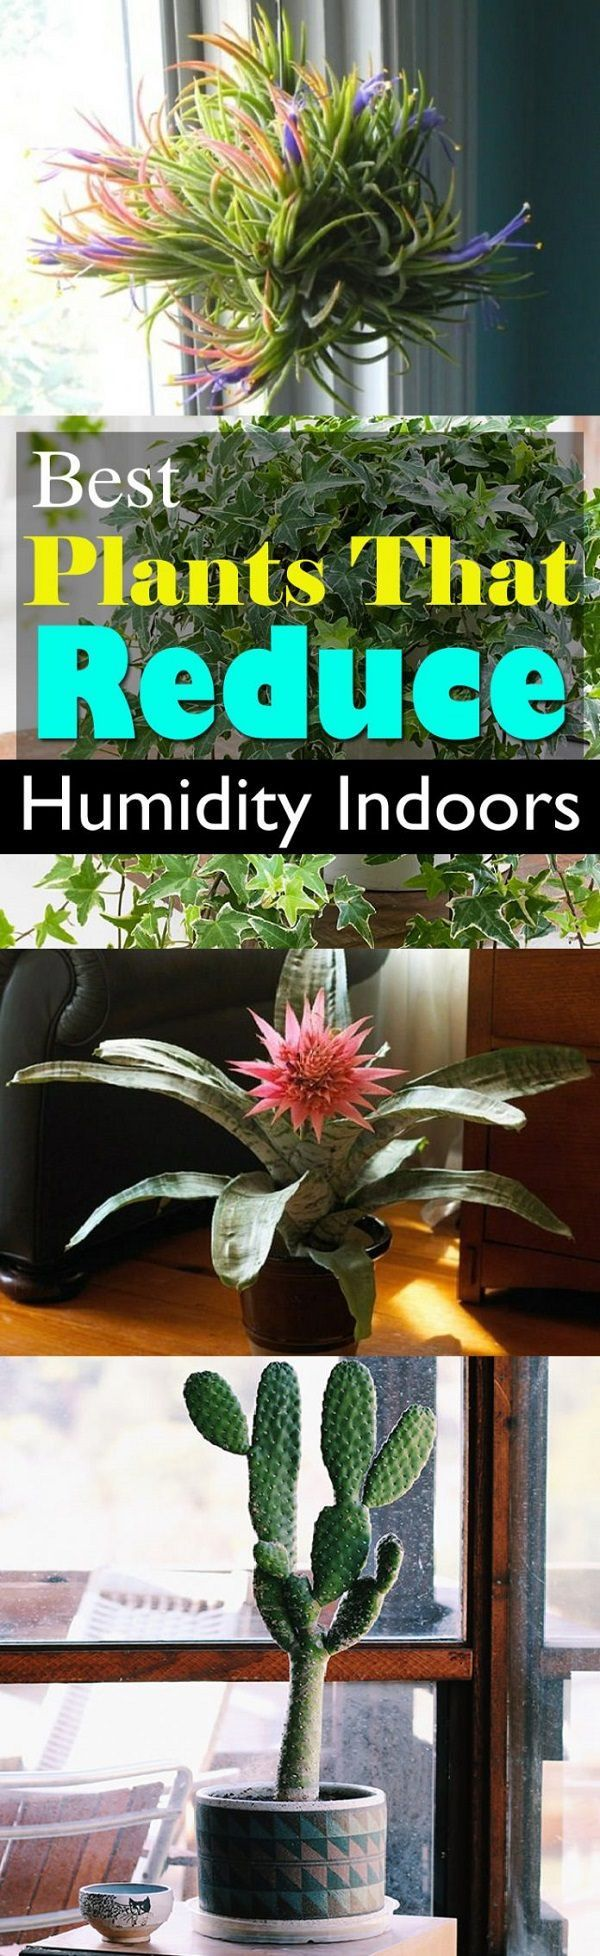 Do you want to reduce the humidity level in your home? Try out the indoor plants on this list!